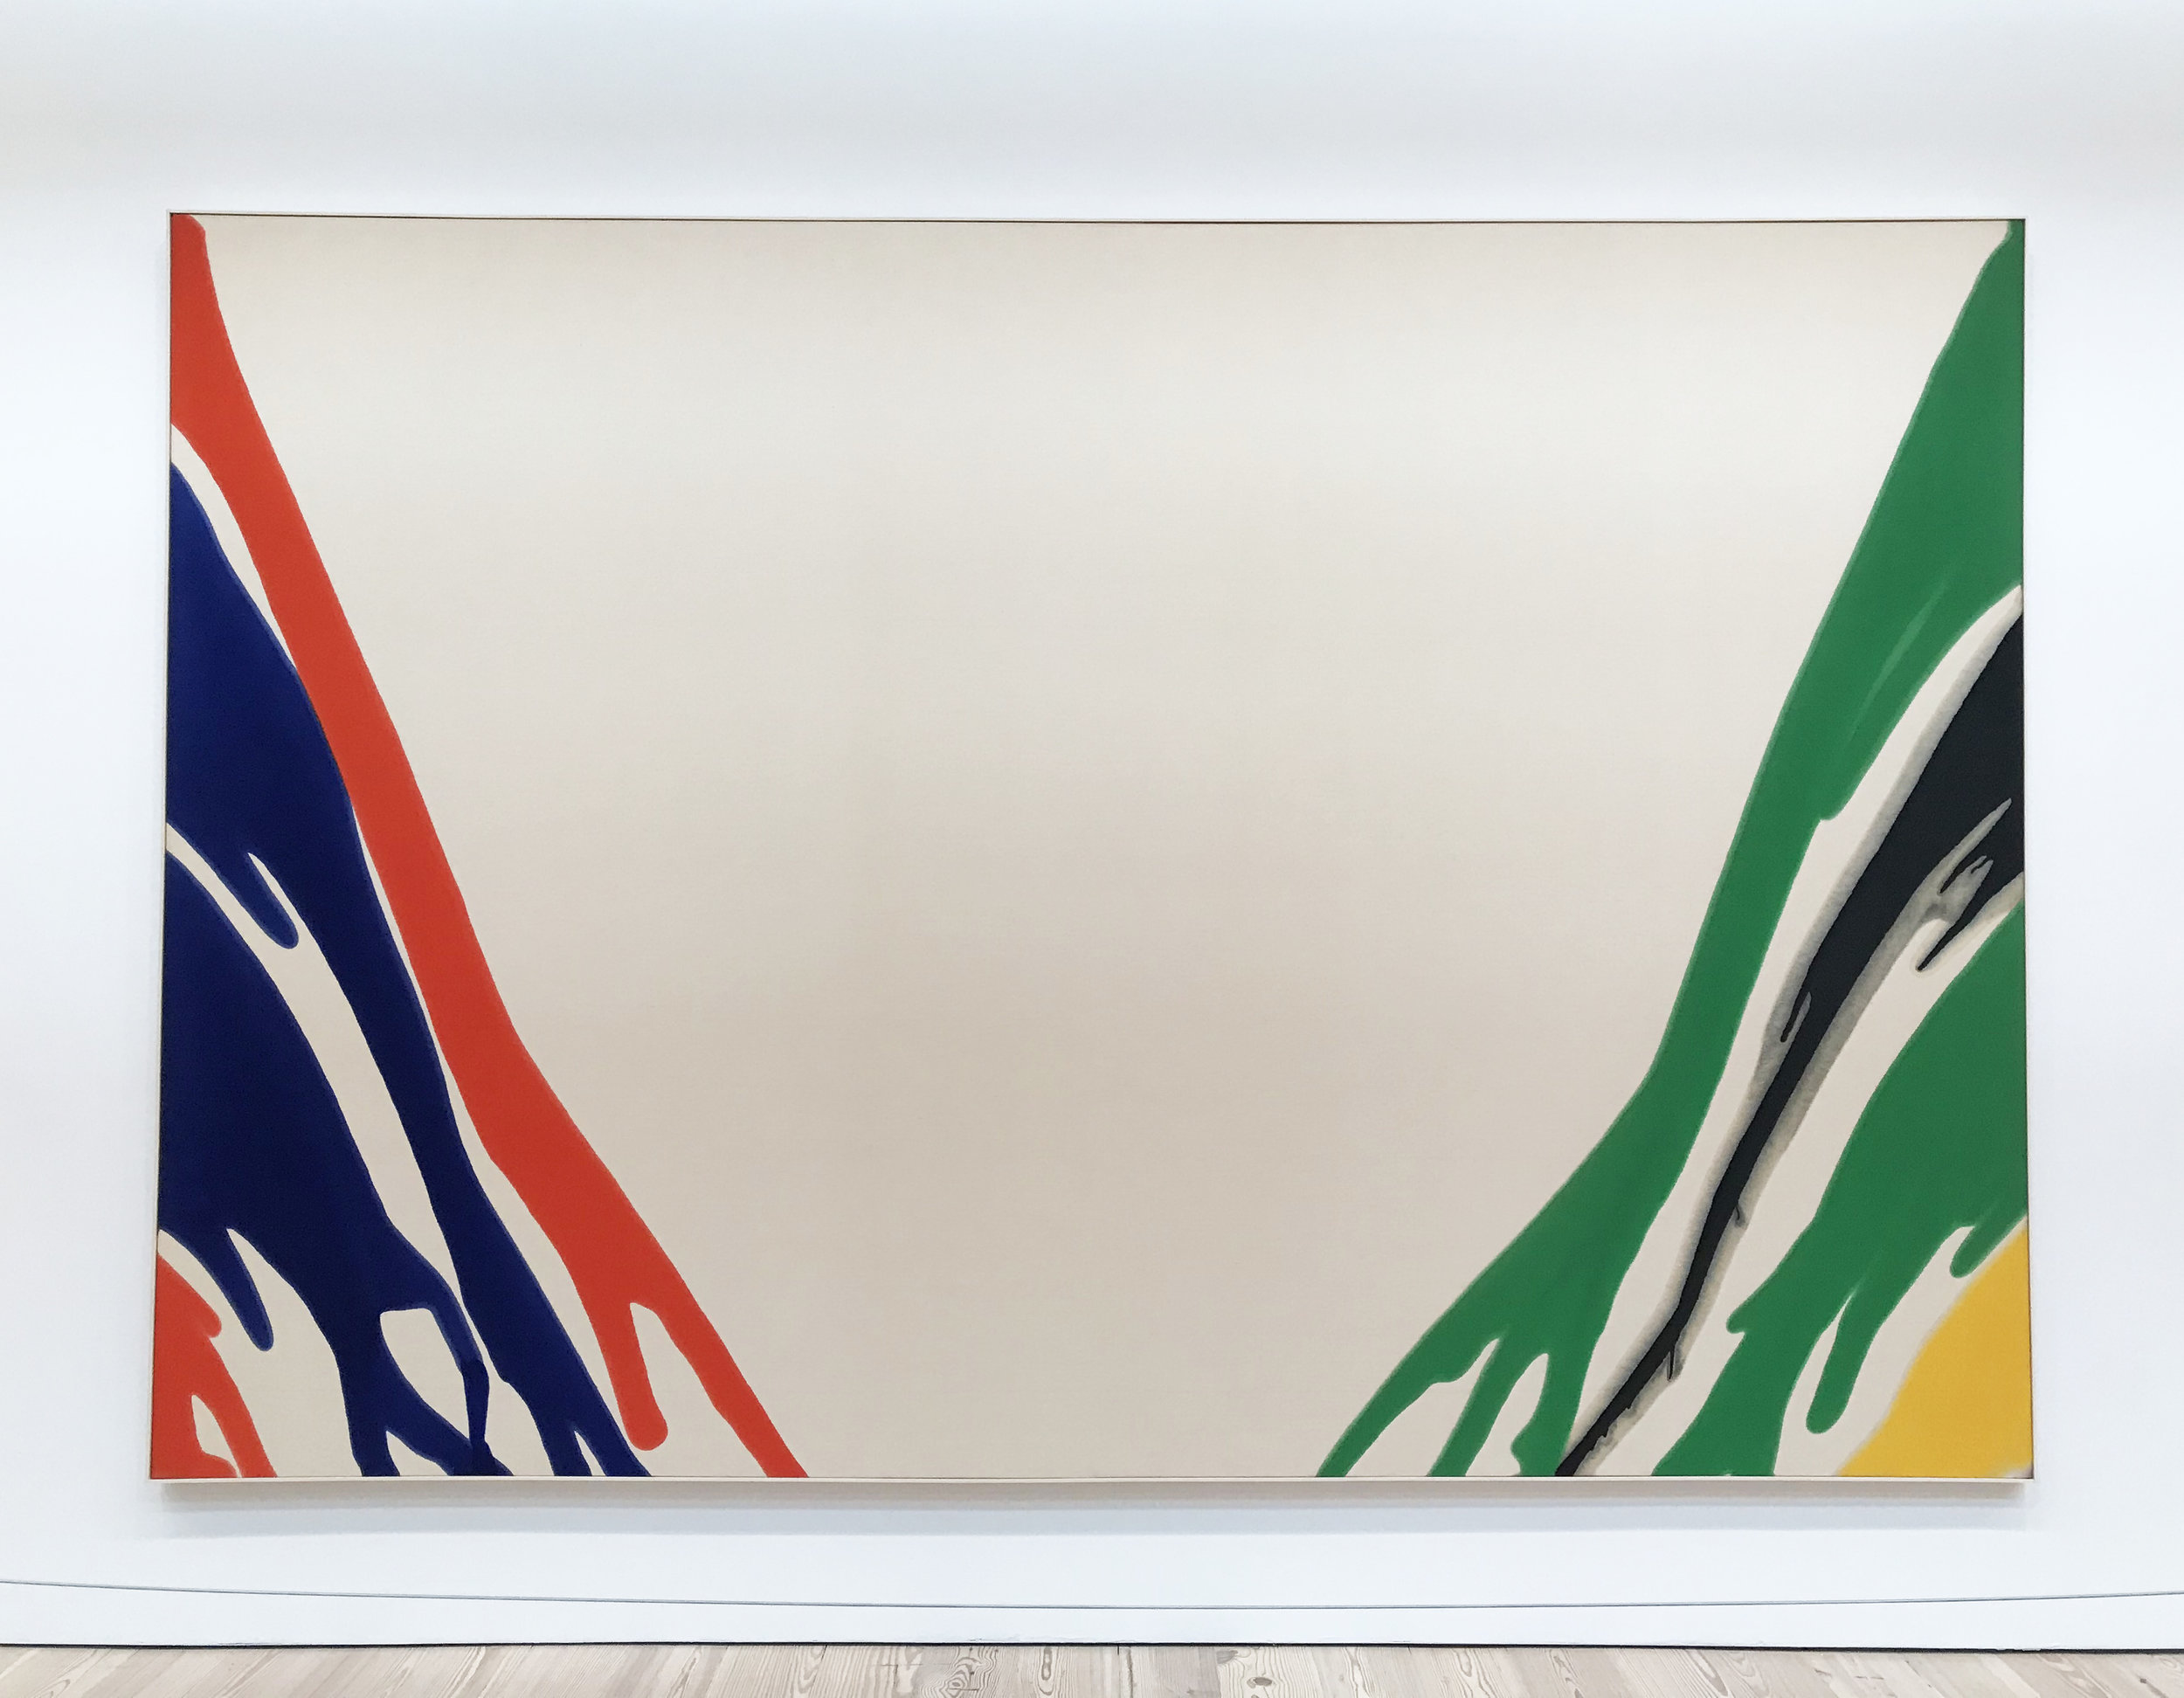 "'Gamma Delta' by Morris Louis, 1959-60. Magna on canvas.  I'd never heard of Magna before. It's a brand name of an acrylic resin paint developed in 1947.  ""In Morris Louis's Gamma Delta brightly colored, poured ribbons of paint uncoil to the bottom edge of the canvas, leaving a void in the center. Tom make the work, Louis stained the canvas by diluting and pouring synthetic paints onto its surface, allowing the colors to spread and bleed. Louis explored the technique for nine years, in response to the paintings of Jackson Pollock and especially to those of Helen Frankenthaler, whose studio Louis visited in 1953."""